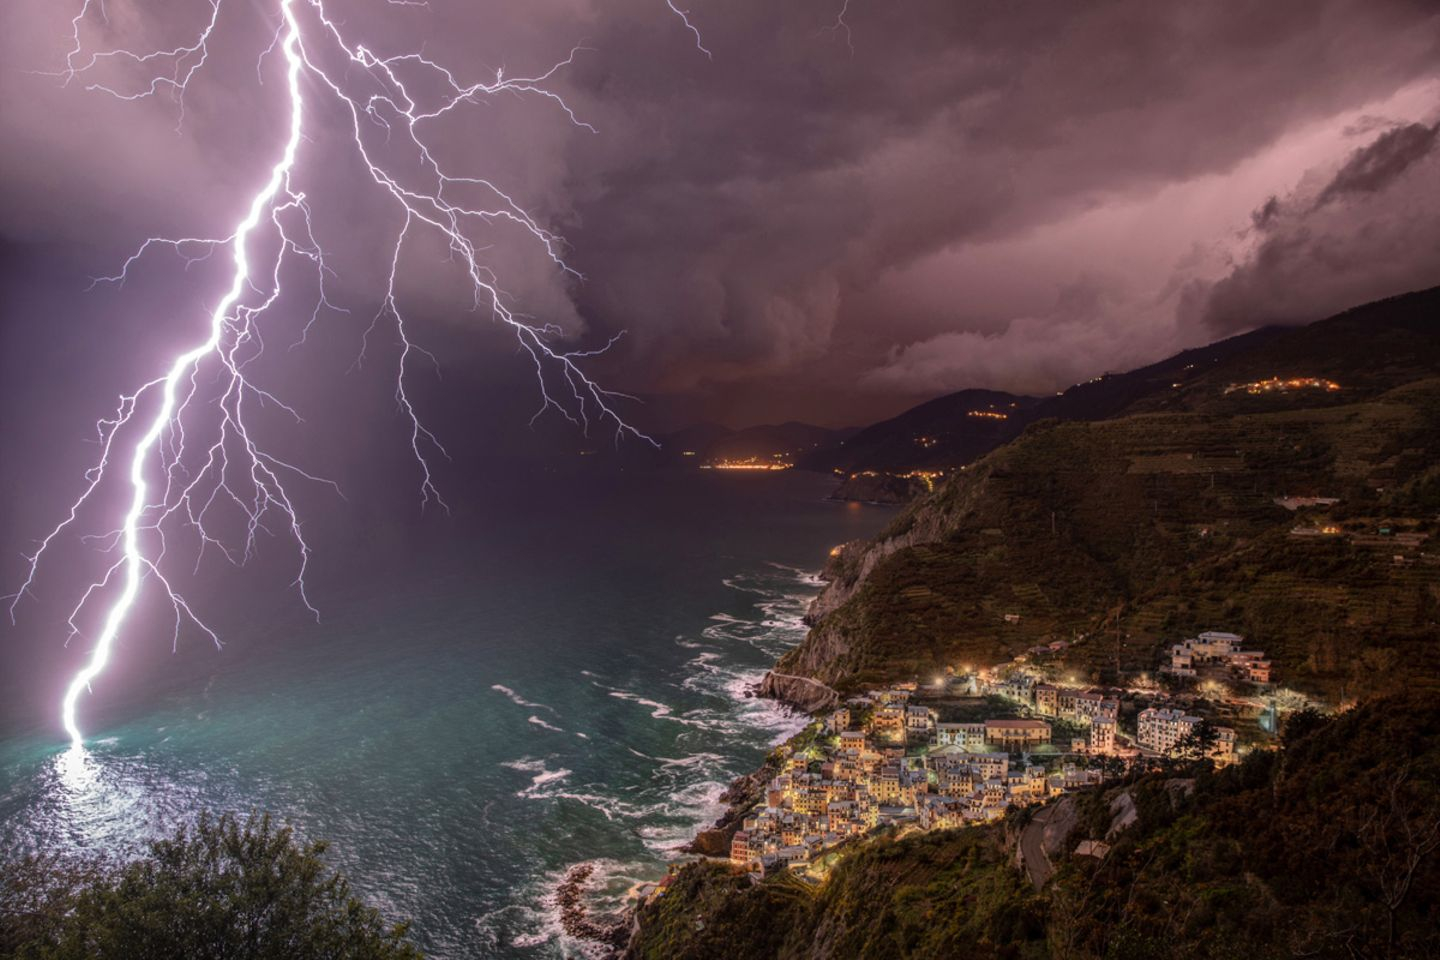 Elena Salvai/Weather Photographer of the Year 2019